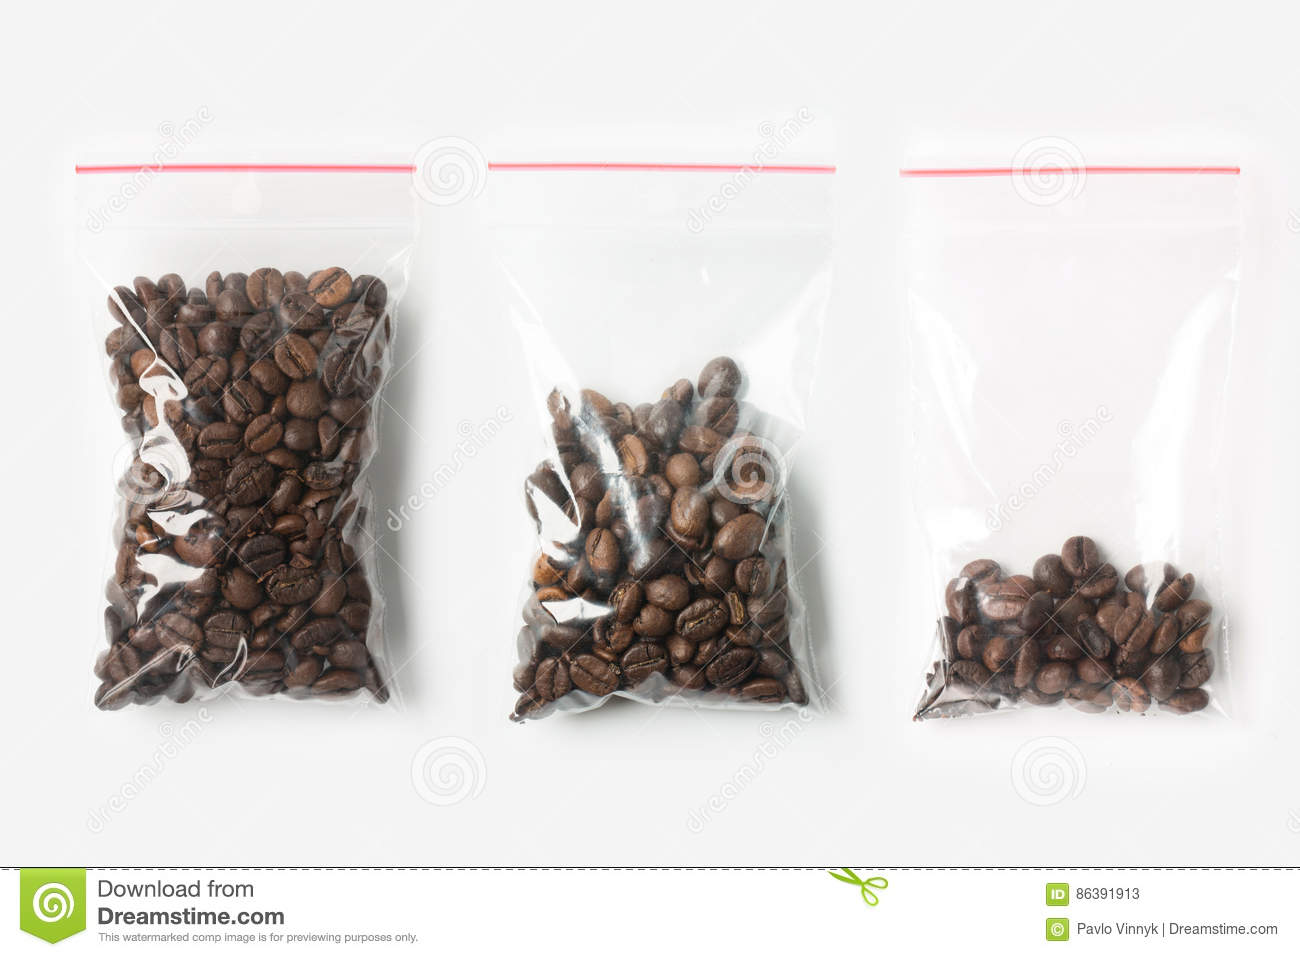 Set of three EMPTY, HALF AND FULL Plastic transparent zipper bag with coffee beans isolated on white. Vacuum package mockup with r